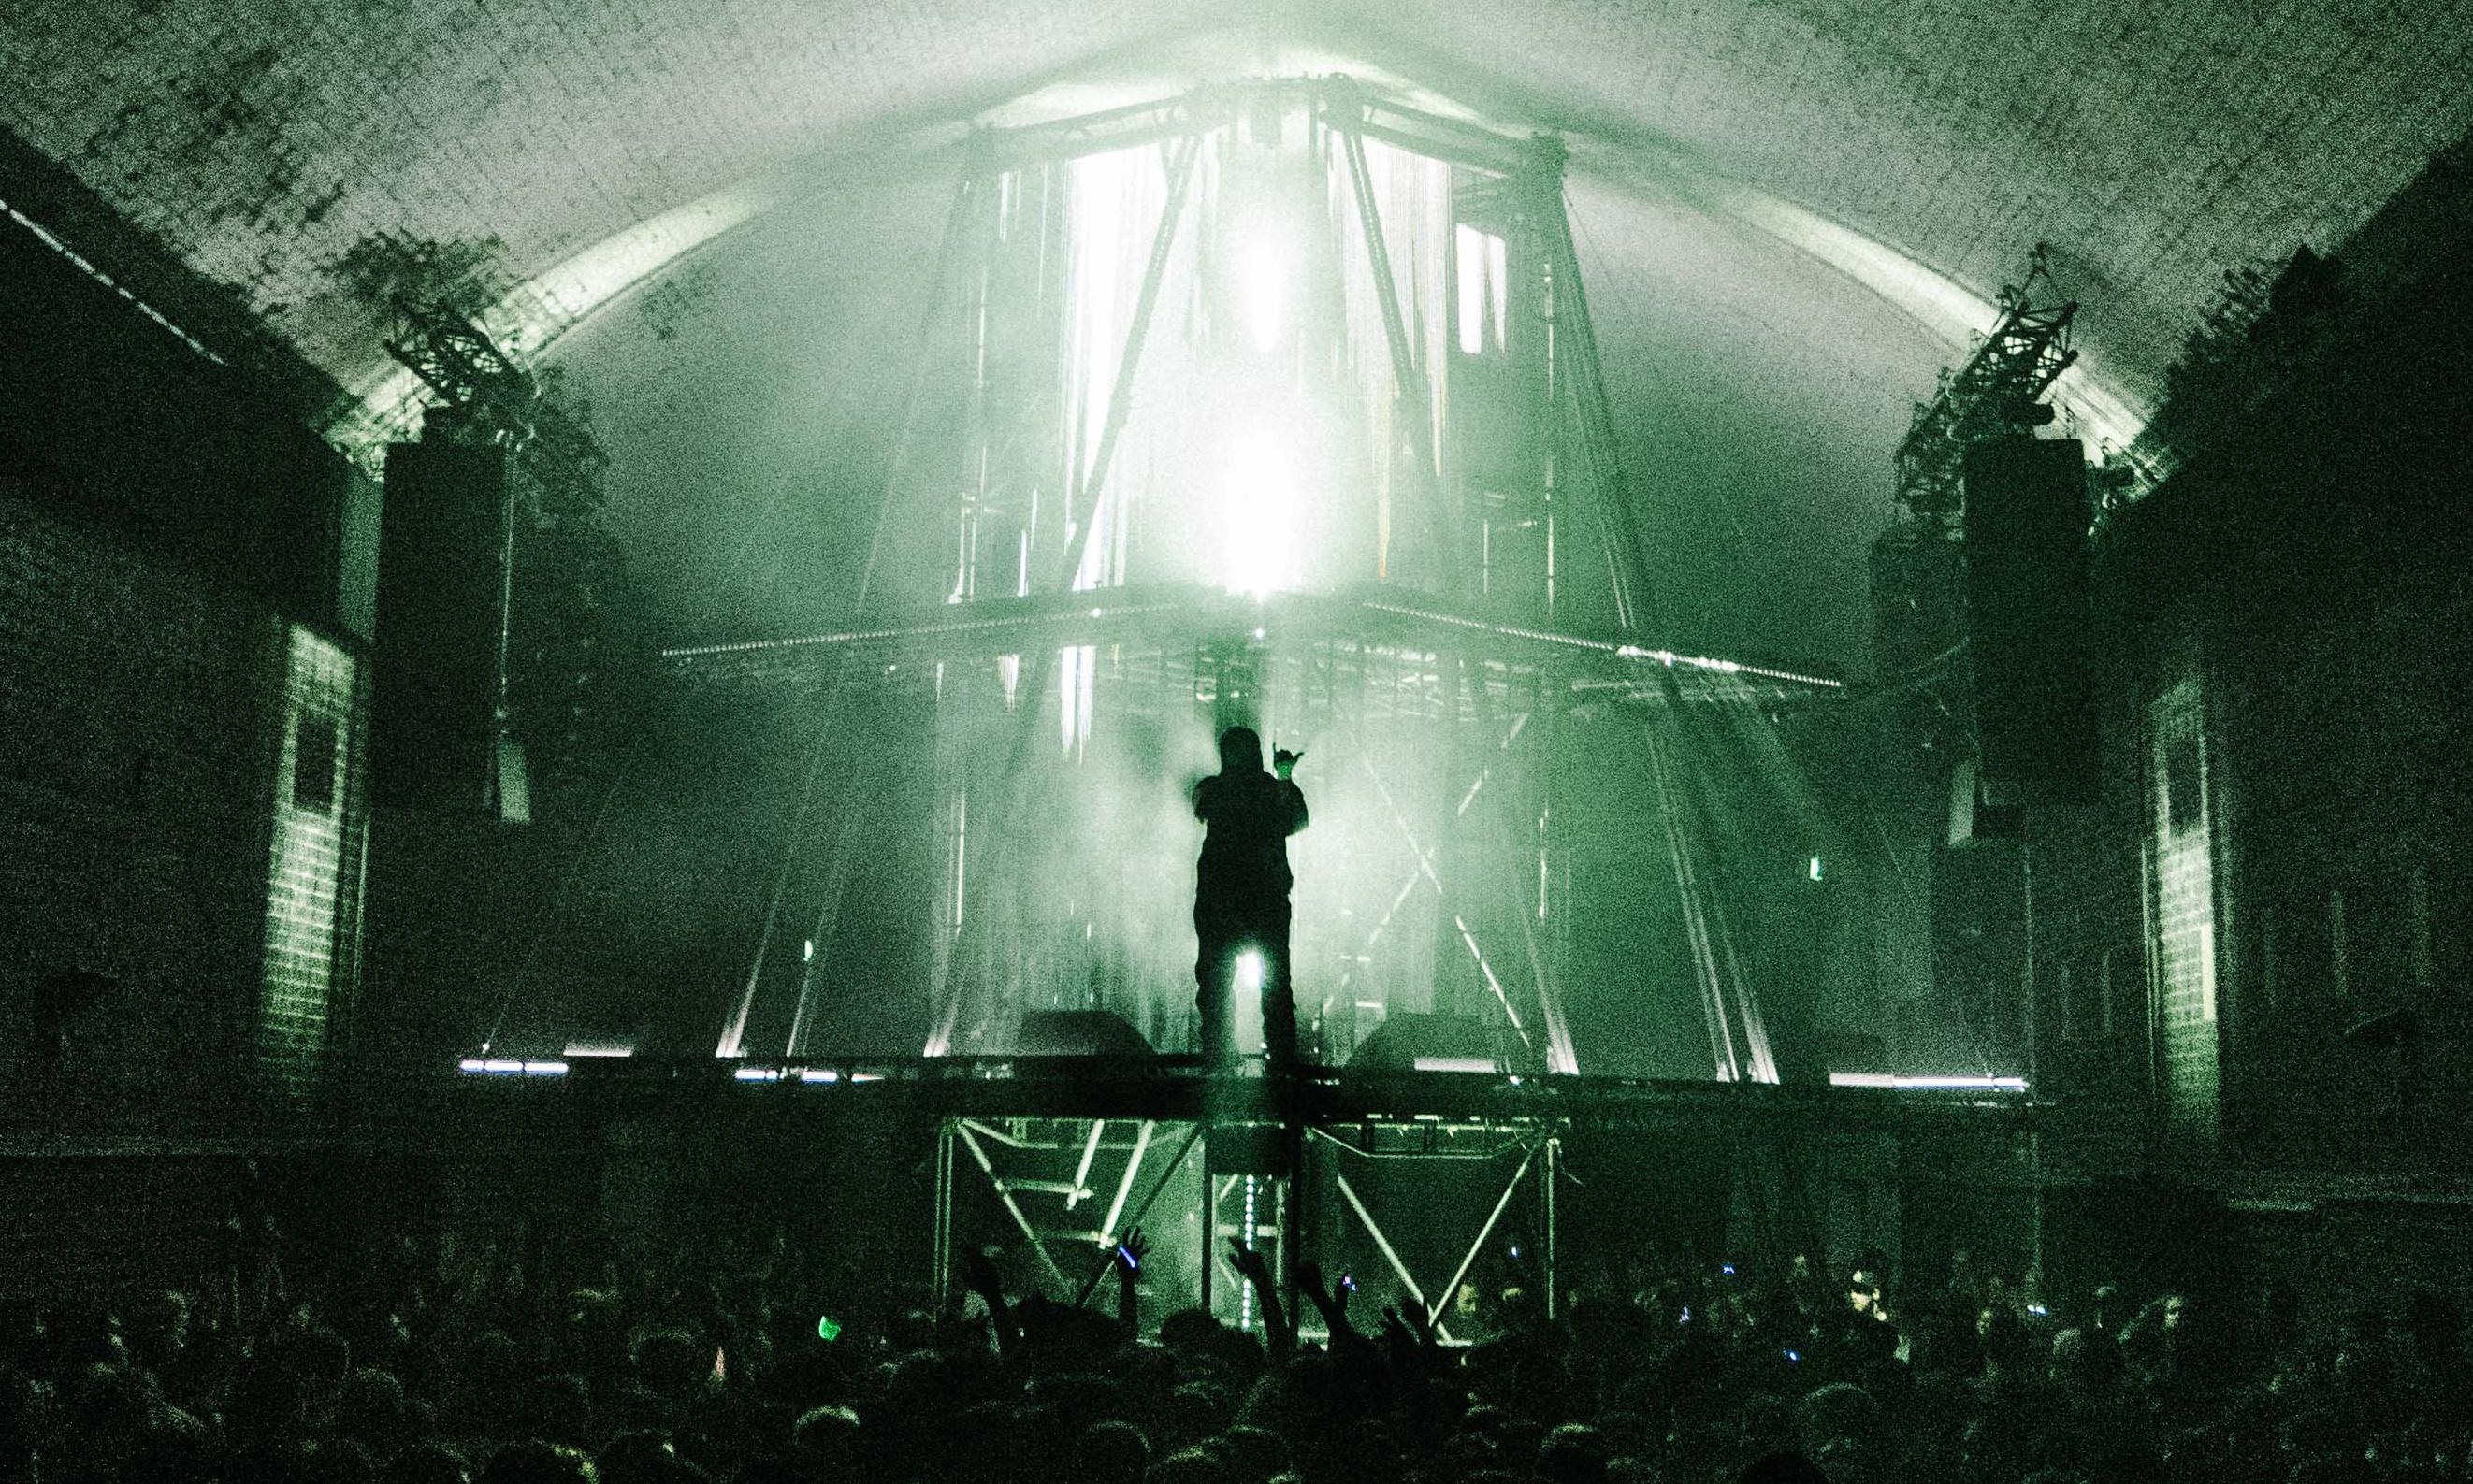 Skepta: Dystopia987 review – flat energy in nightclub of the future